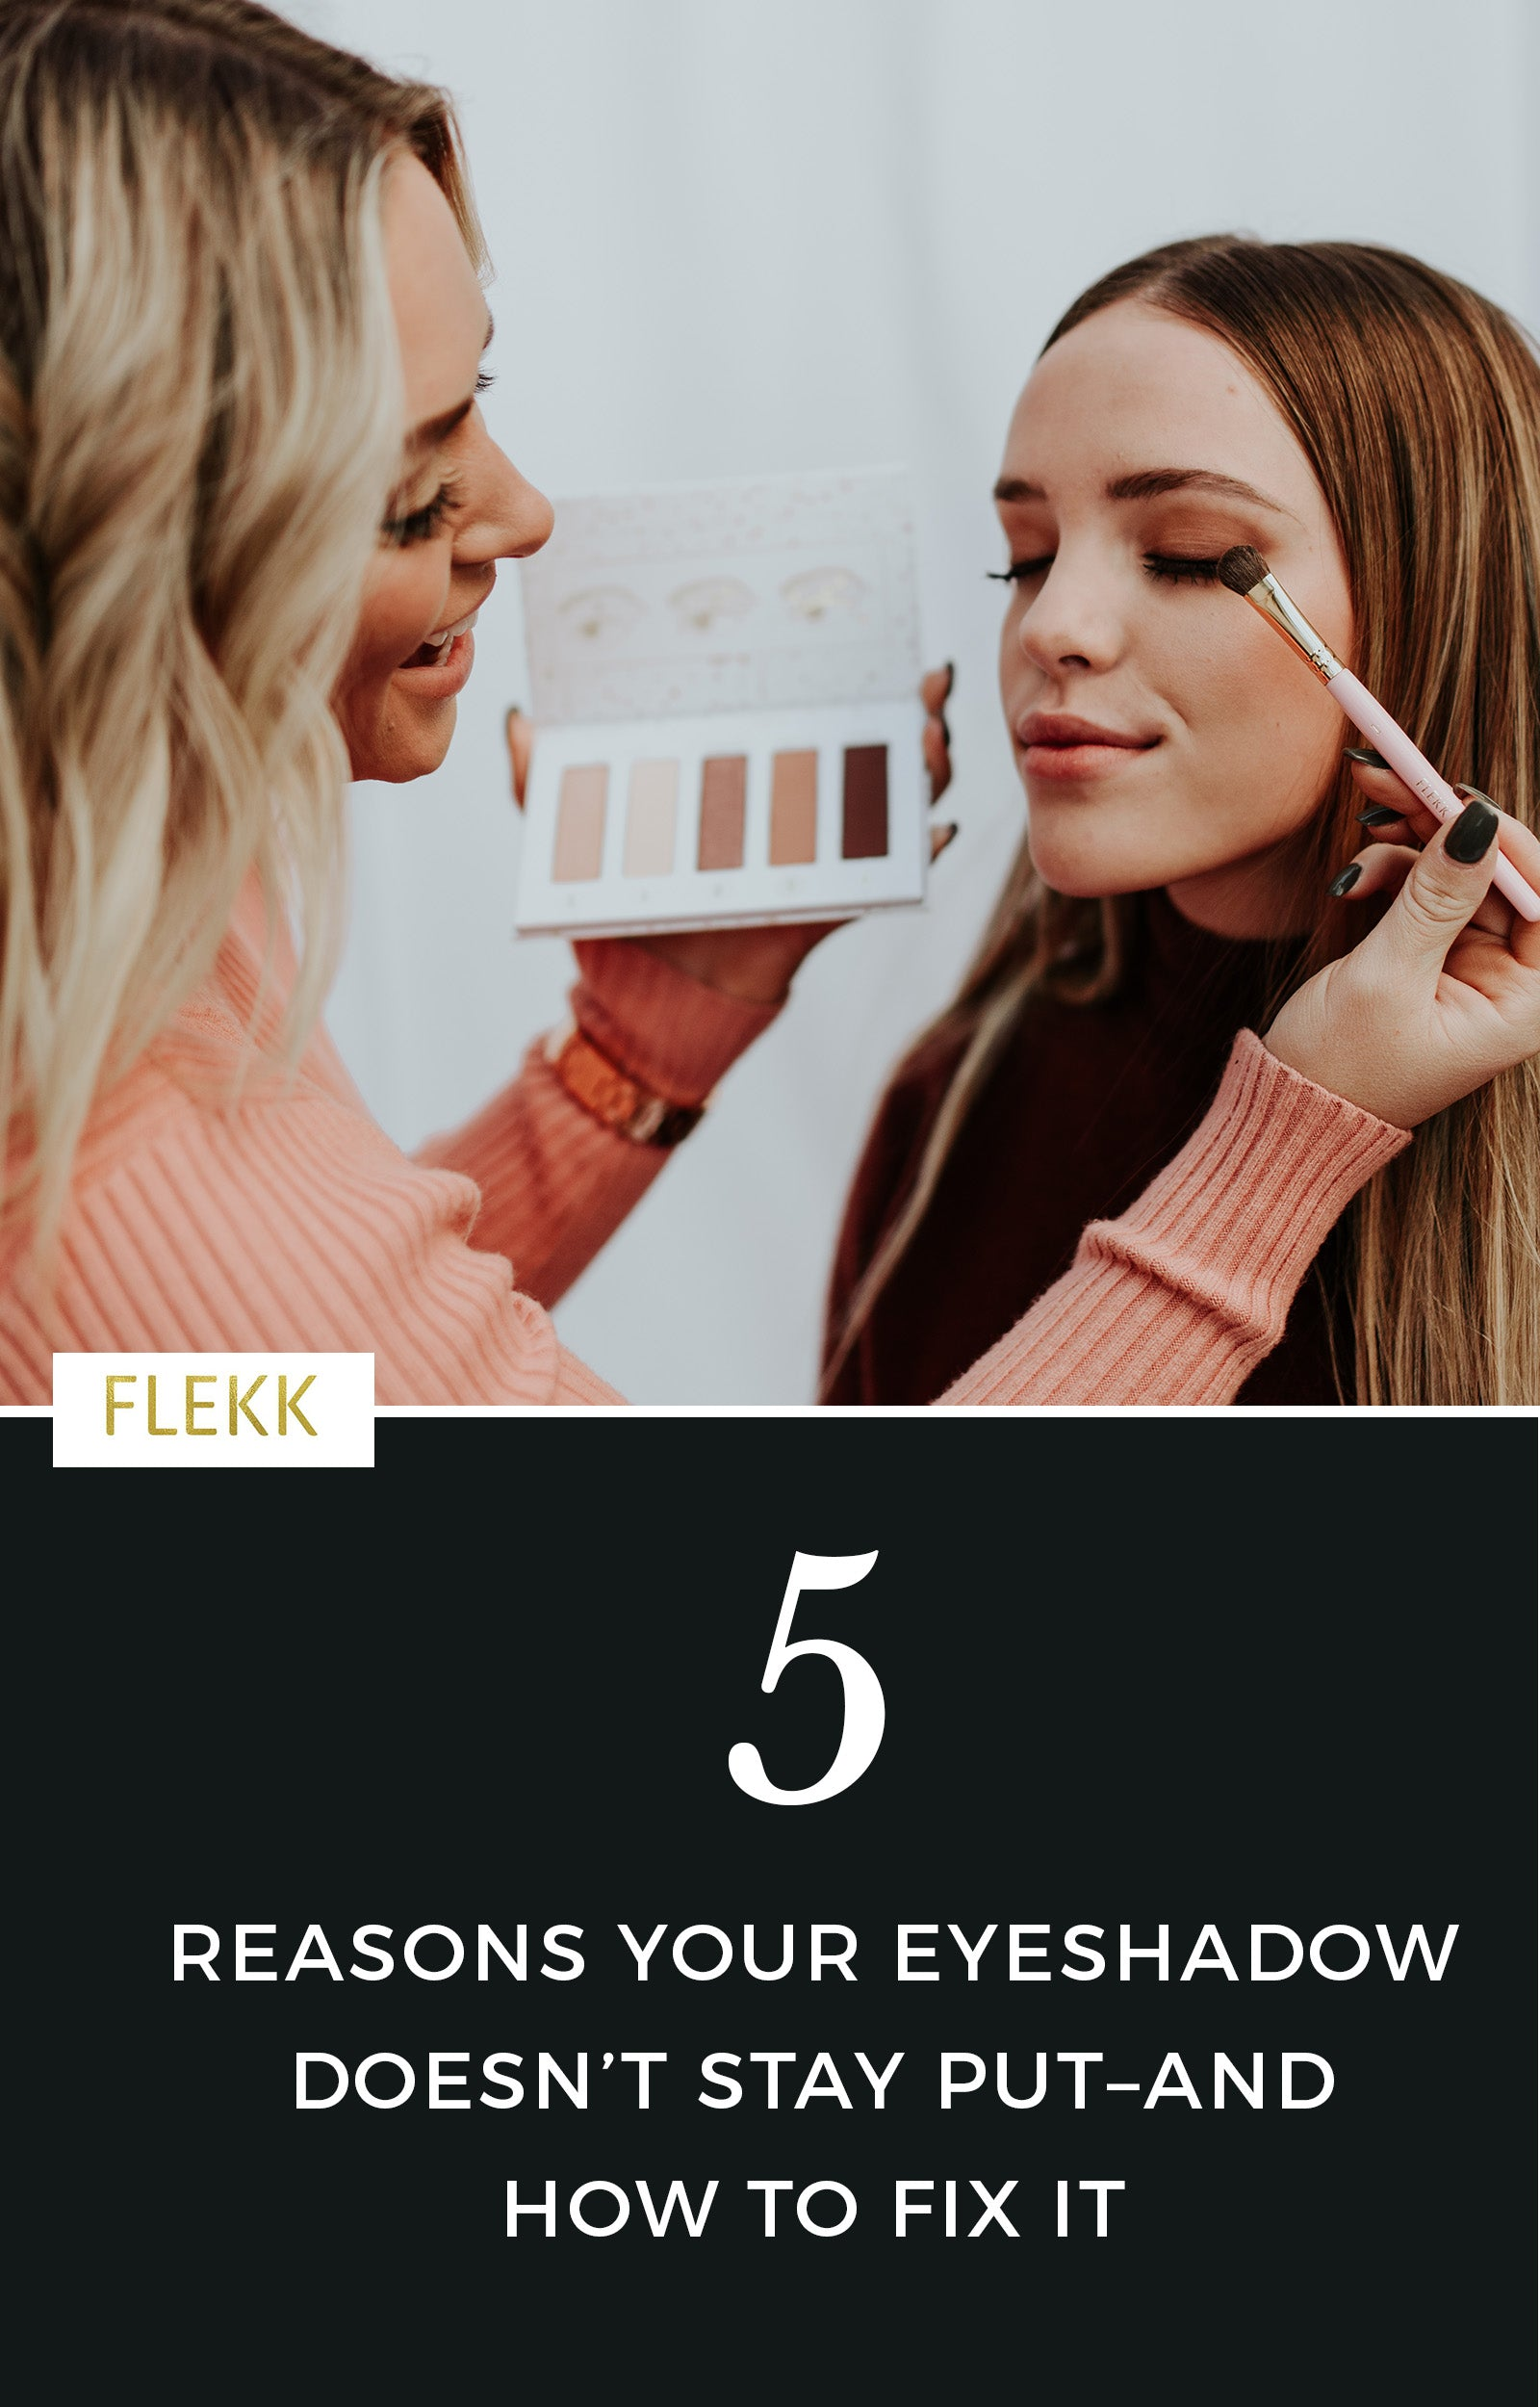 The top 5 reasons why eye shadow doesn't last–and how to fix it. How to make your eyeshadow last all day long, and these tips apply to all women (celebrities, teens, women dealing with aging eyes, etc.) #eyeshadowtips #makeuptips #eyeshadowhelp #longlasting #eyemakeup #howtoapplyeyeshadow